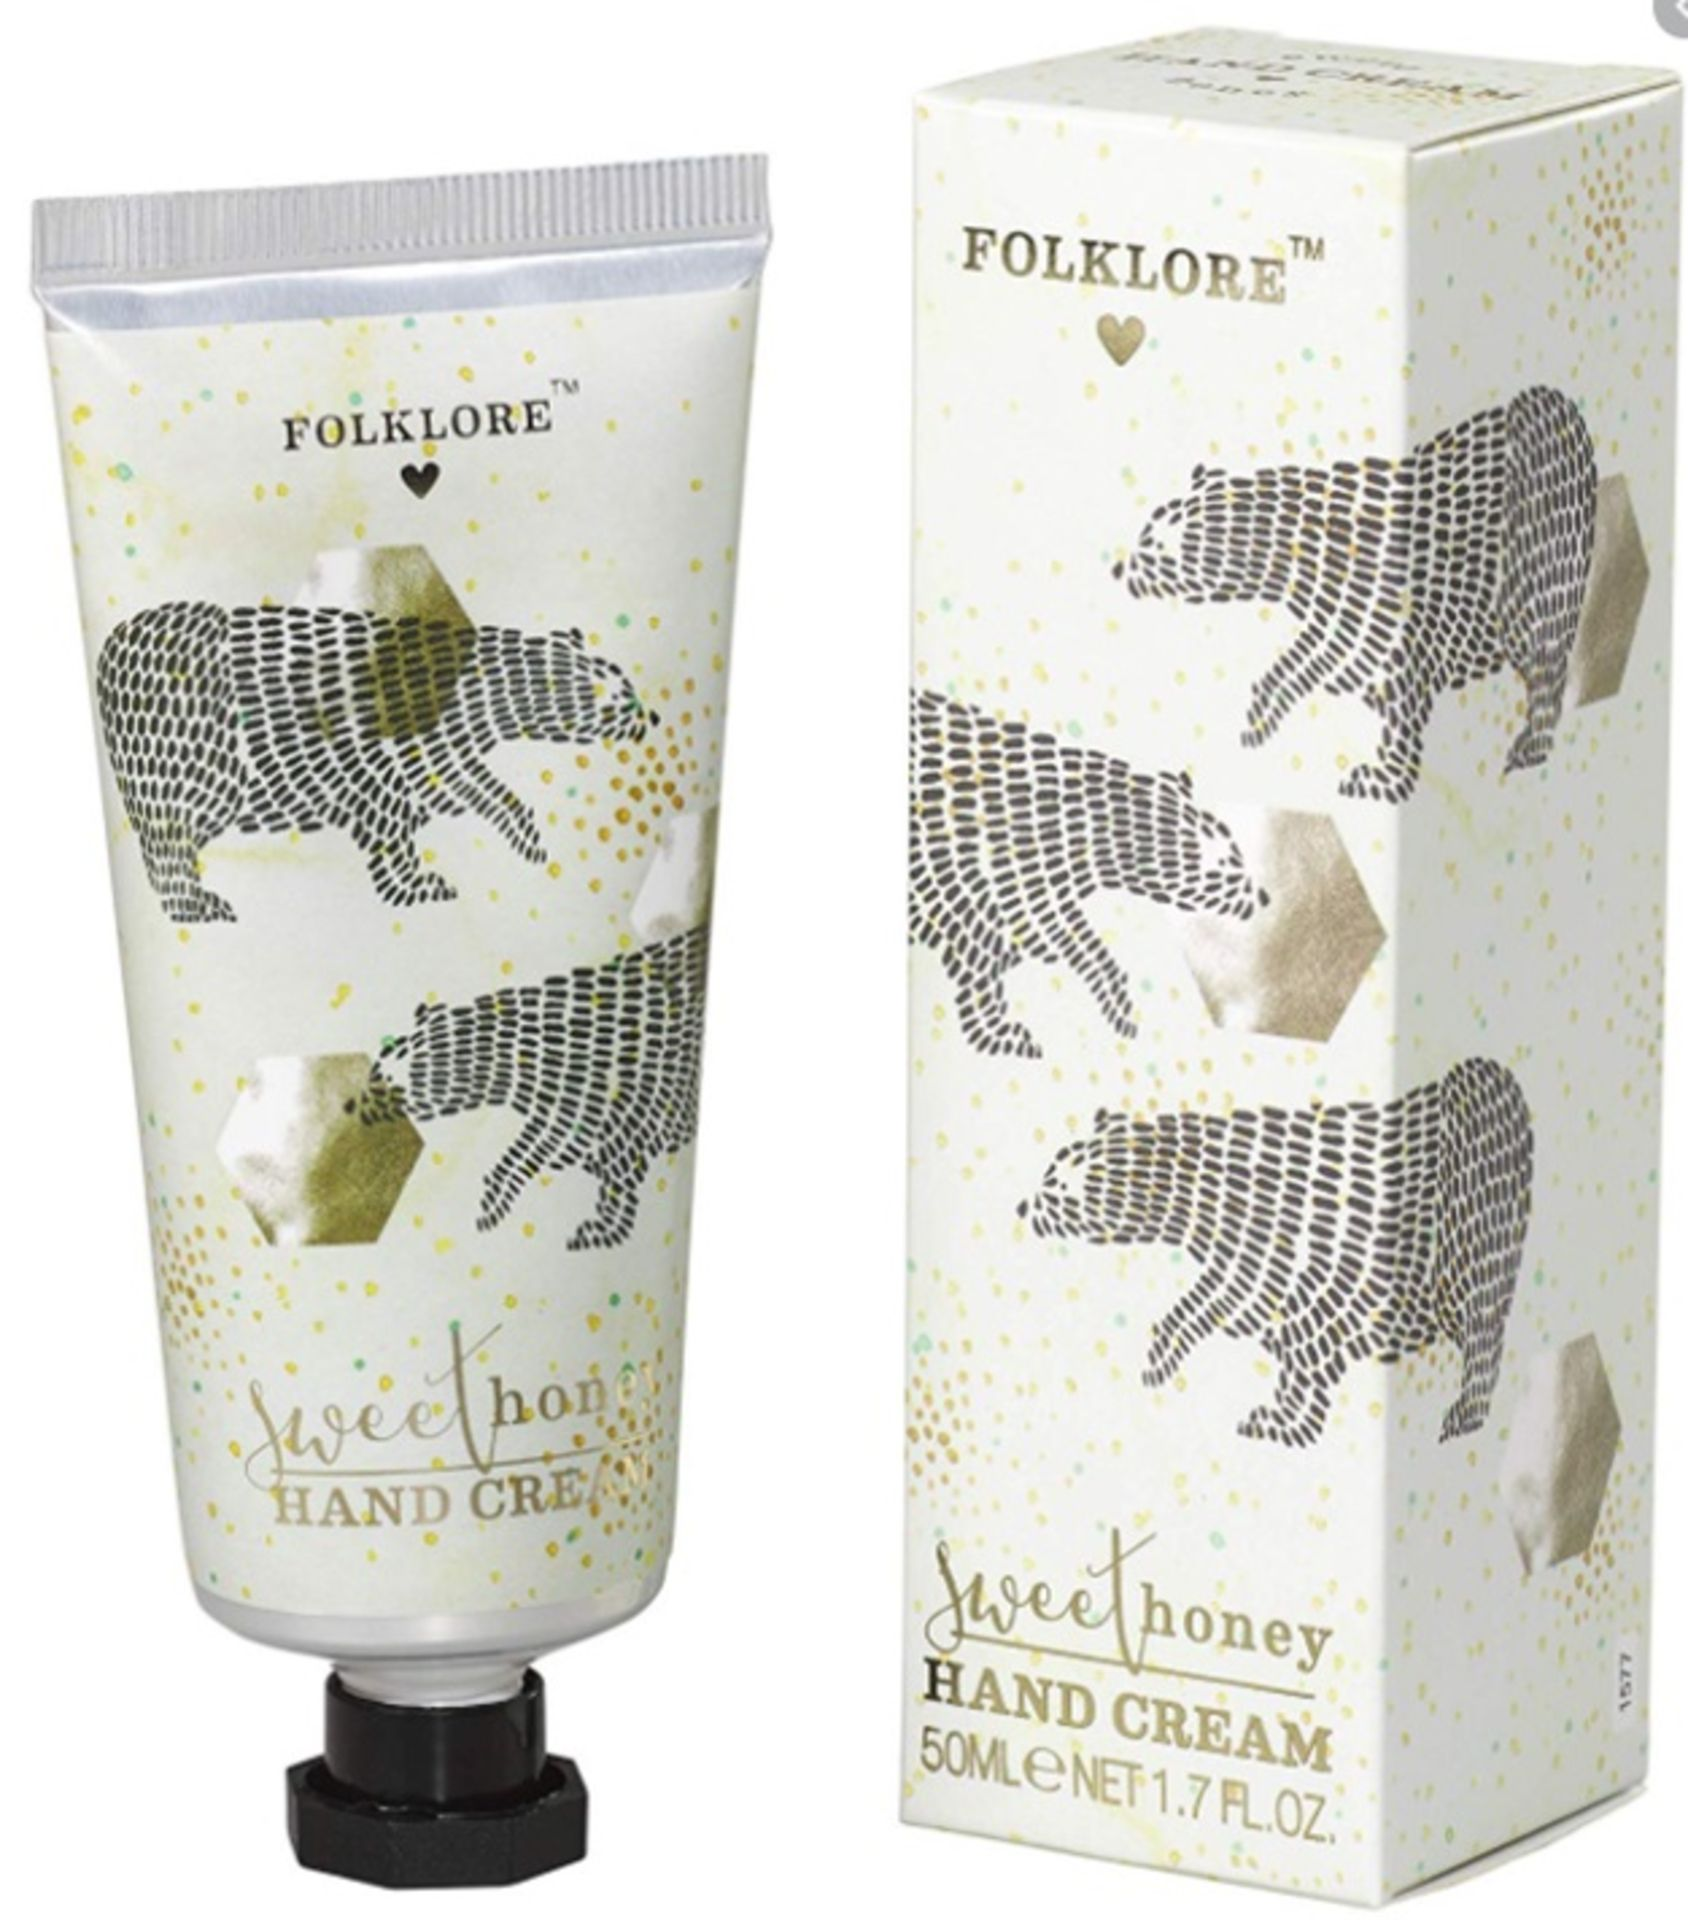 500 x Various Folklore Handcream   50ml   Total RRP £4,495 - Image 2 of 4